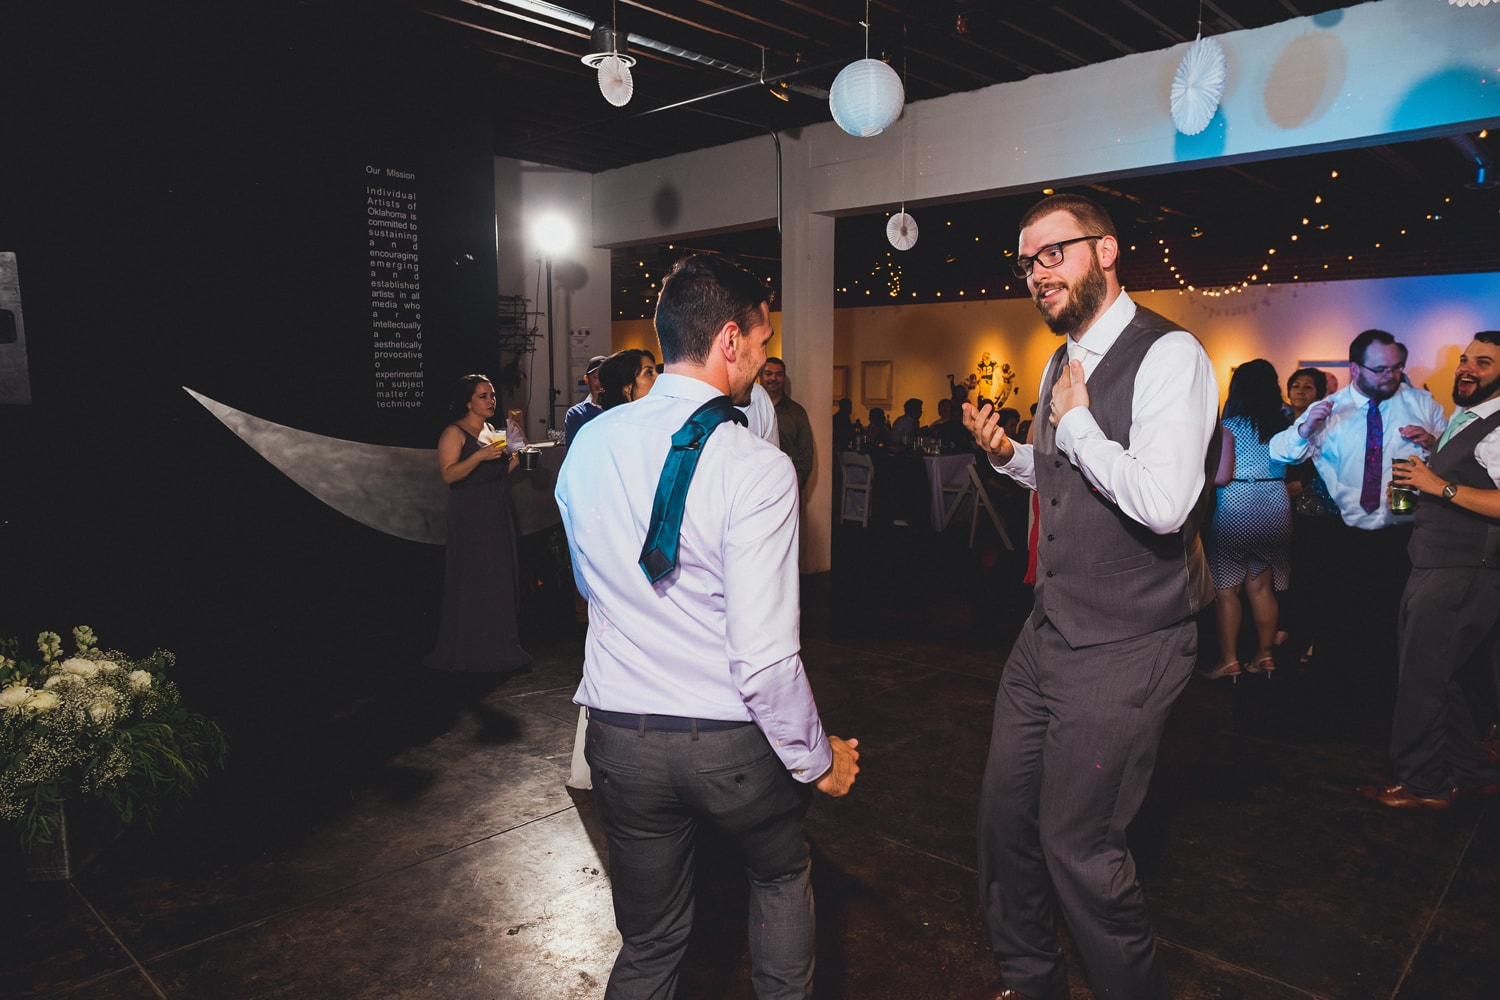 DJ Connection dancing at John Moore and Isabel Orozco Moore wedding at IAO Gallery in Oklahoma City // Photo by Leia Smethurst Photography